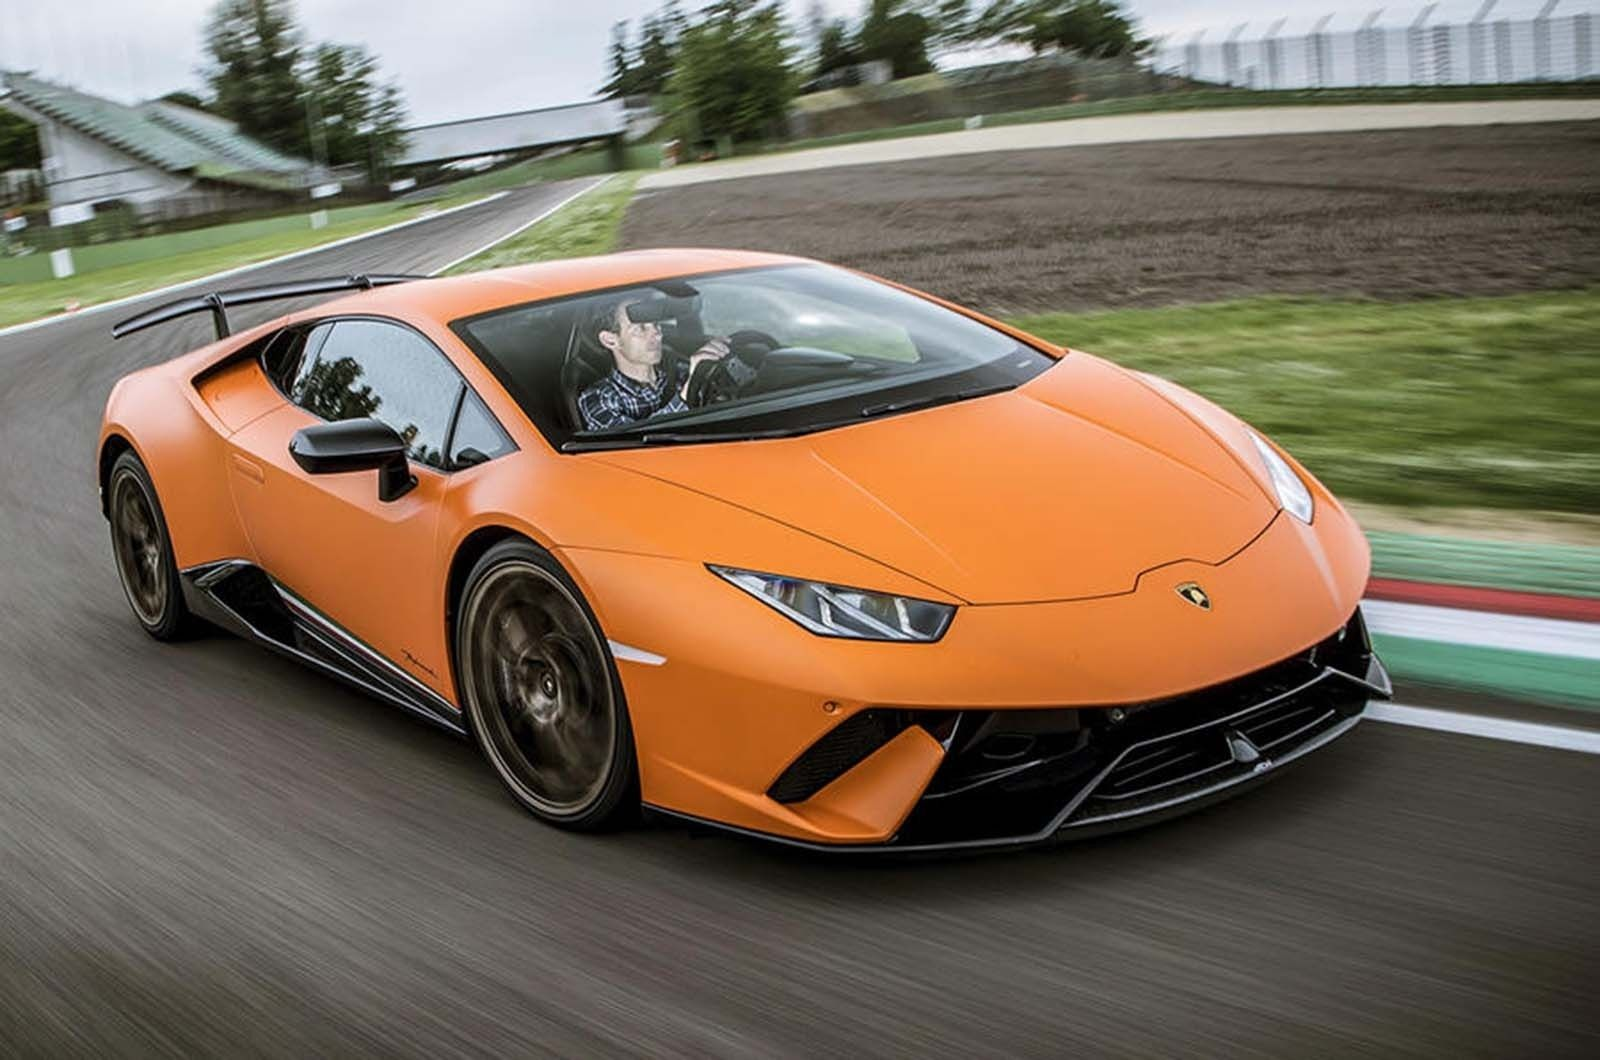 2021 Aventador Release date and Specs